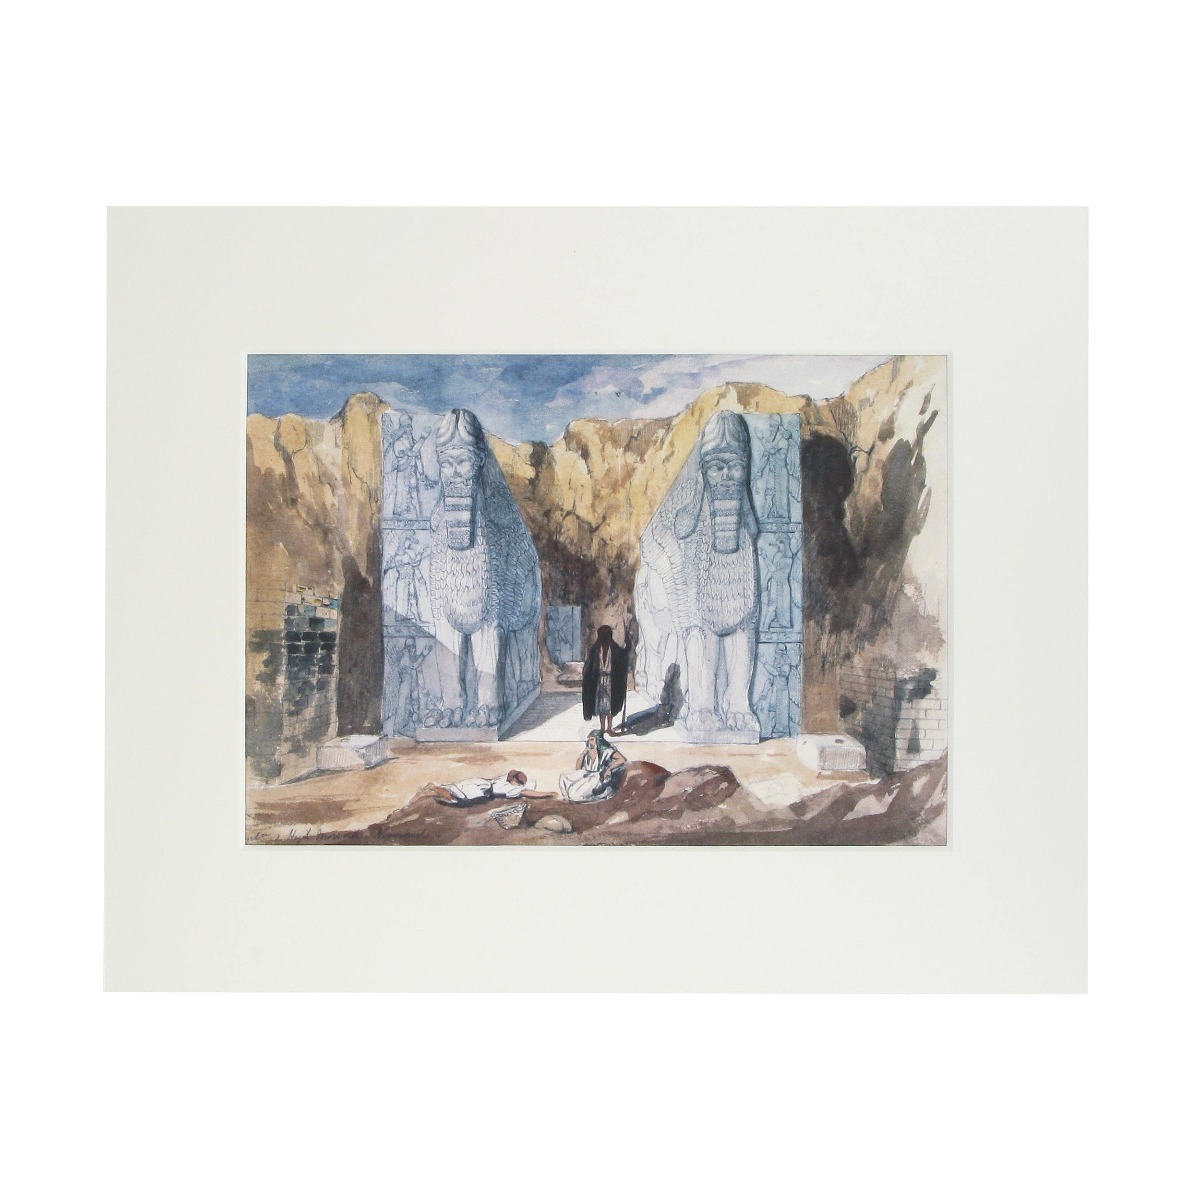 Assyria excavations mounted print